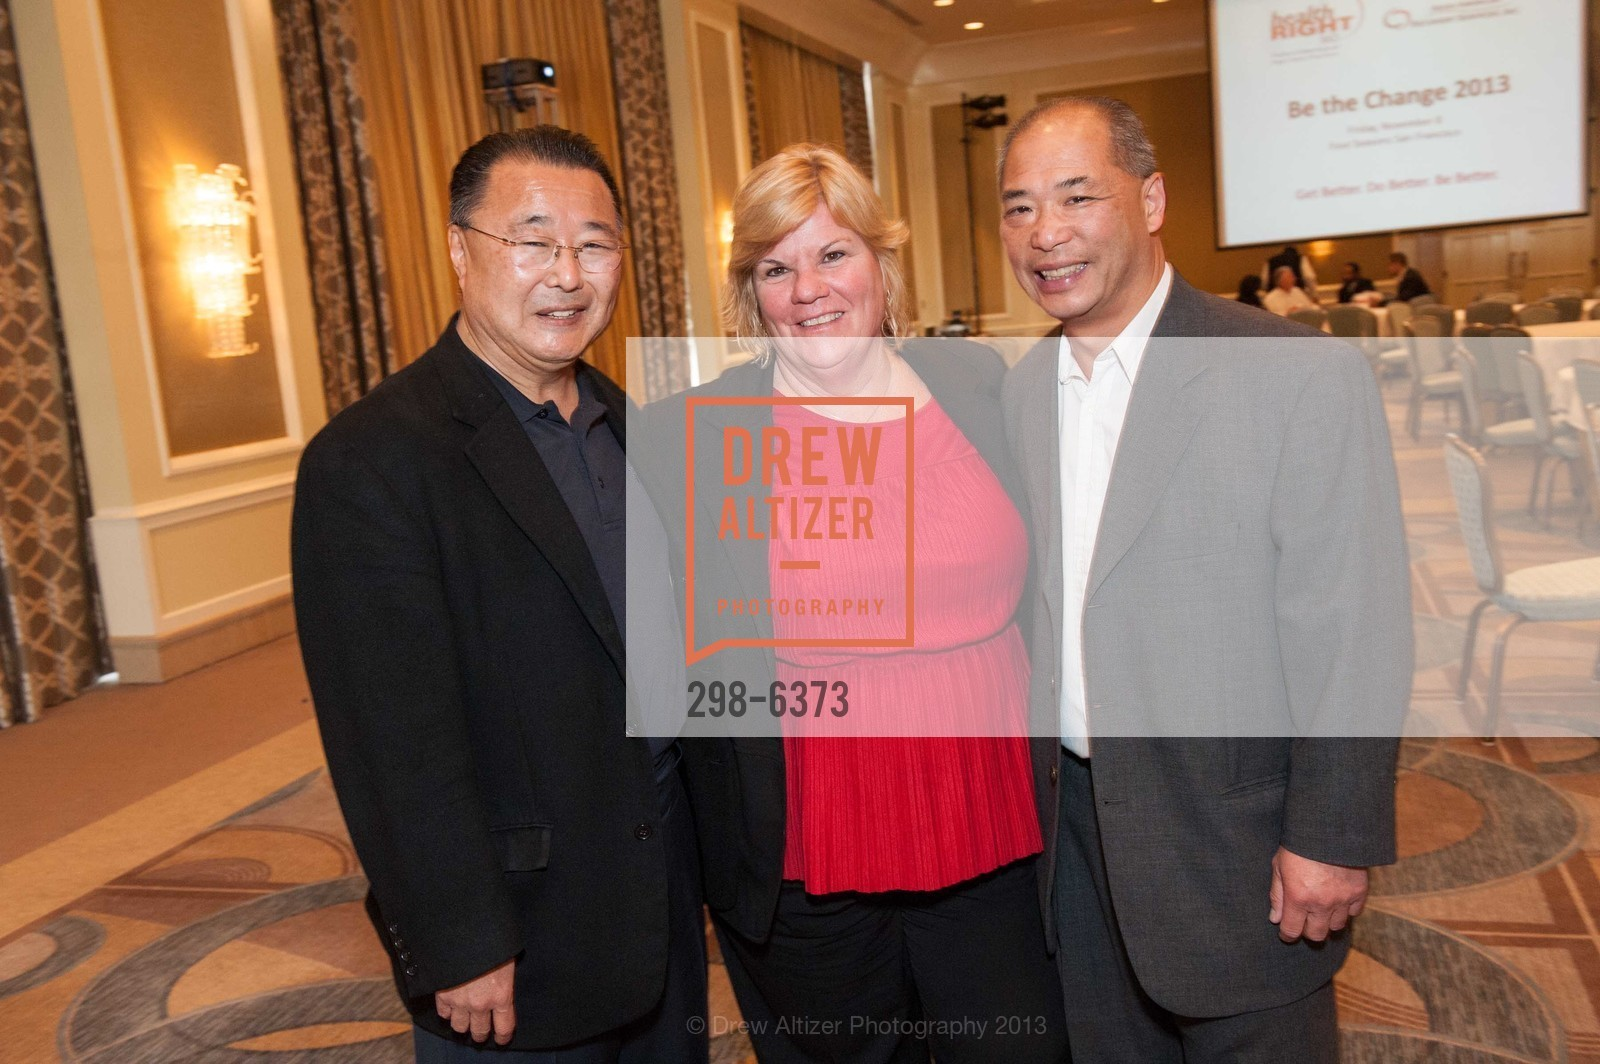 Jeff Mori, Carol Wallace, Richard Jue, HEALTH RIGHT 360:  Be the Change 2013, US, November 8th, 2013